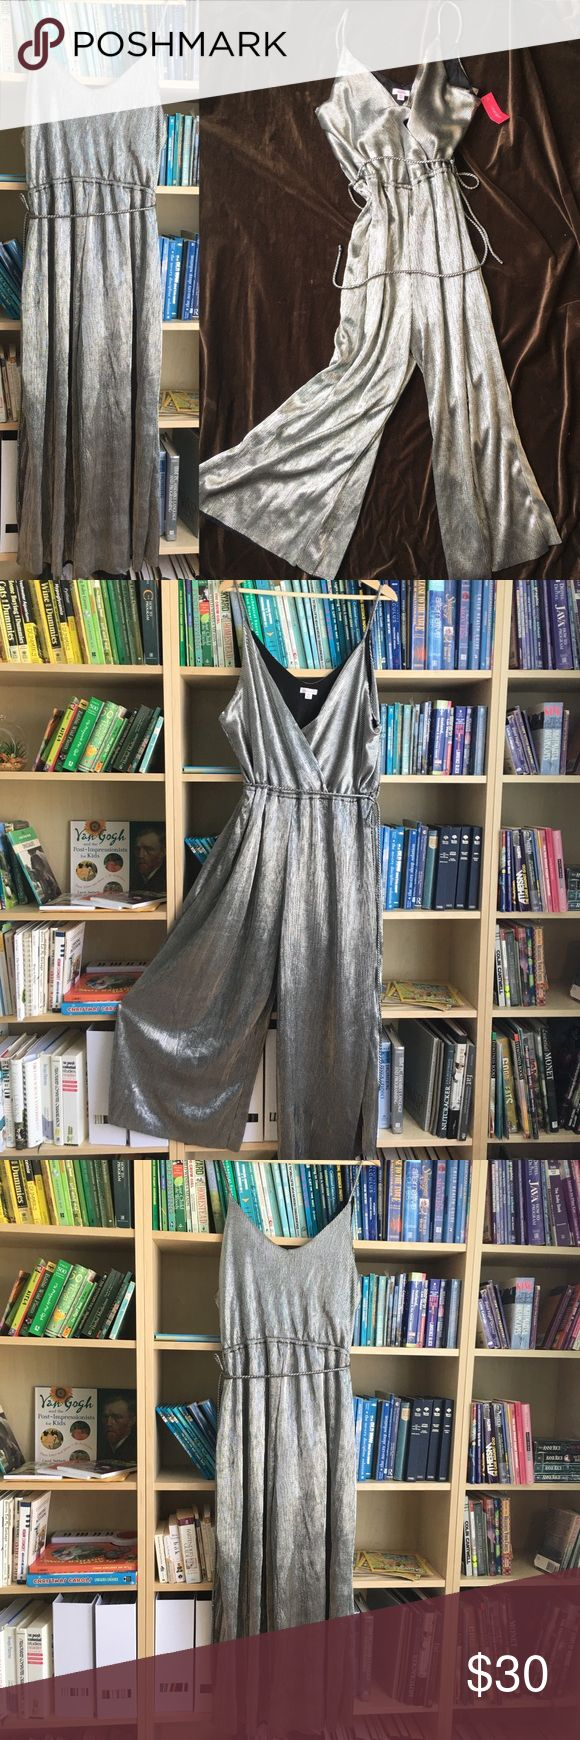 NWT glam metallic jumpsuit Full and slink and swish and glam! This is an attention getter for a sparkly night out. New with tags.   *from a smoke-free, pet-friendly Home. Xhilaration Pants Jumpsuits & Rompers